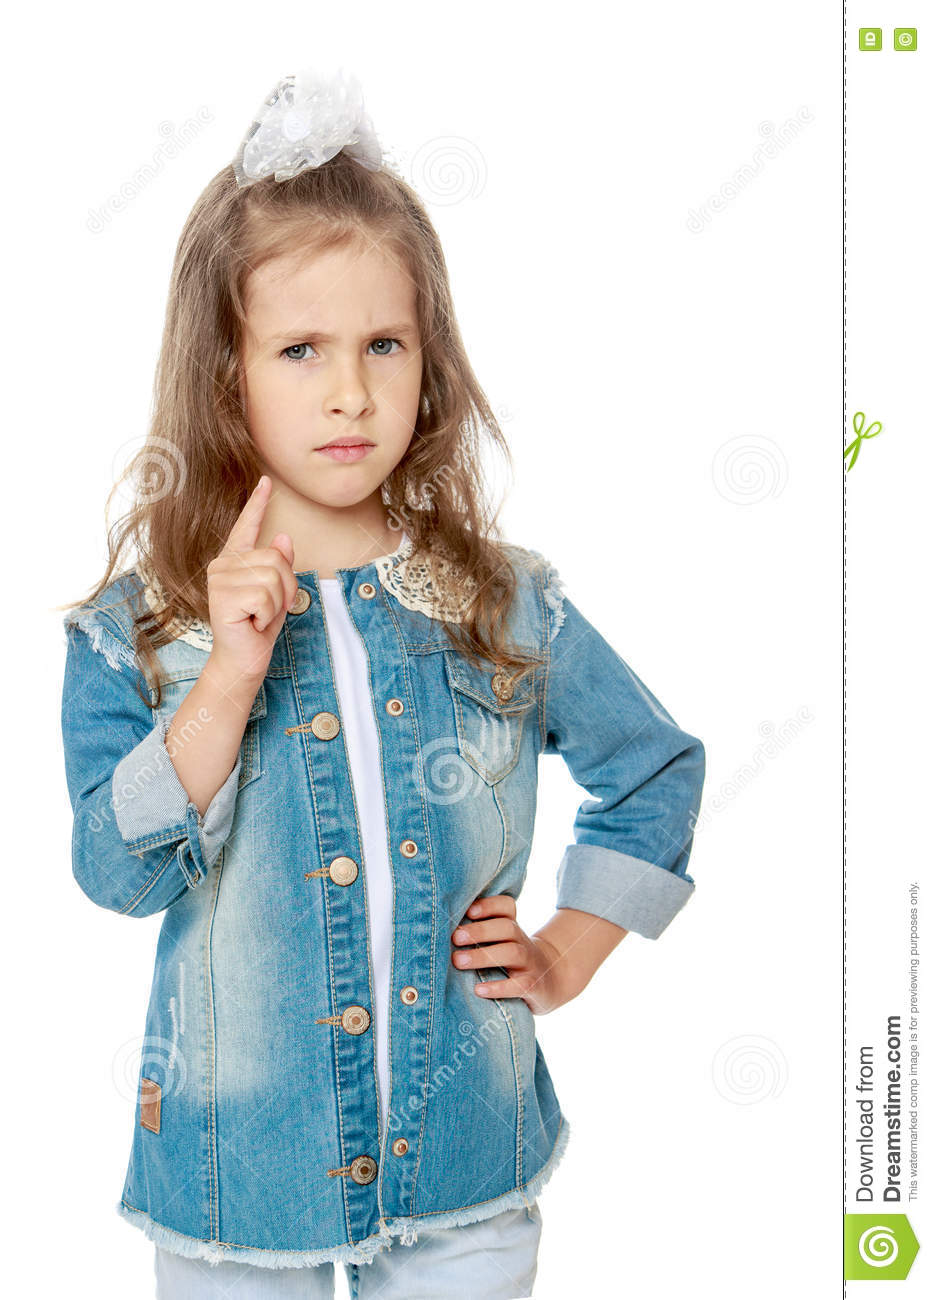 aefe202a3b9 Closeup of a serious little girl threatens with a finger - Isolated on white  background